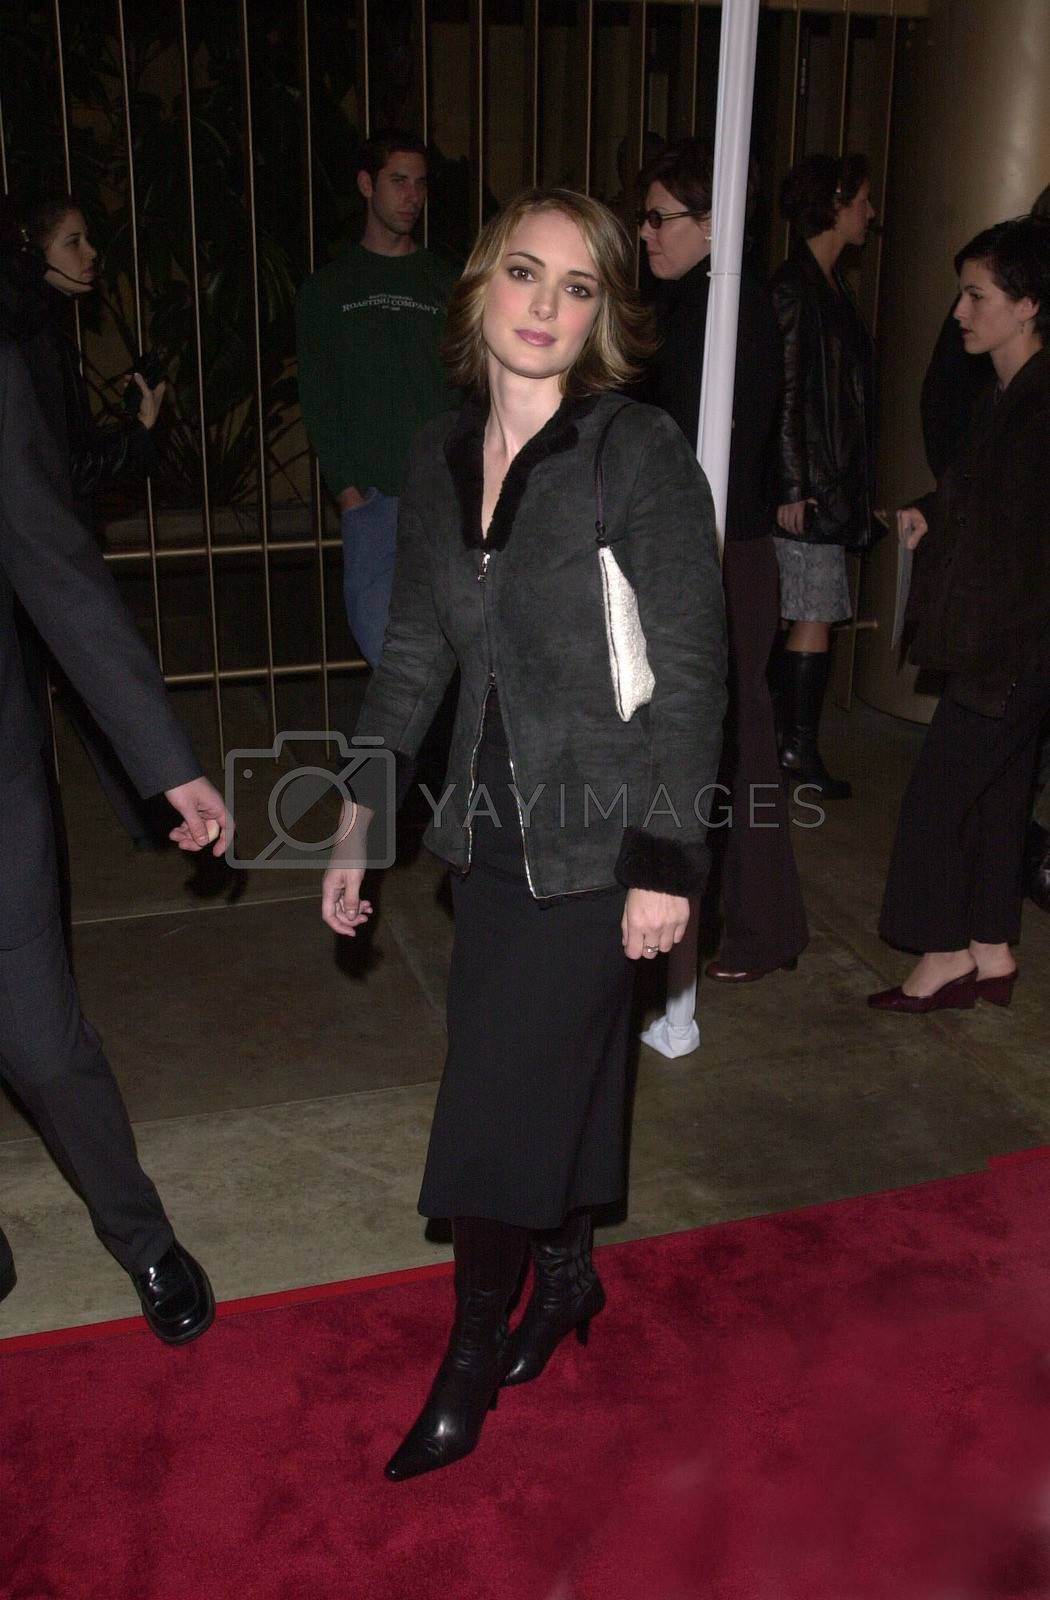 """Winona Ryder at the premiere of New Line Cinema's """"Lost Souls"""" in Hollywood, 10-11-00"""